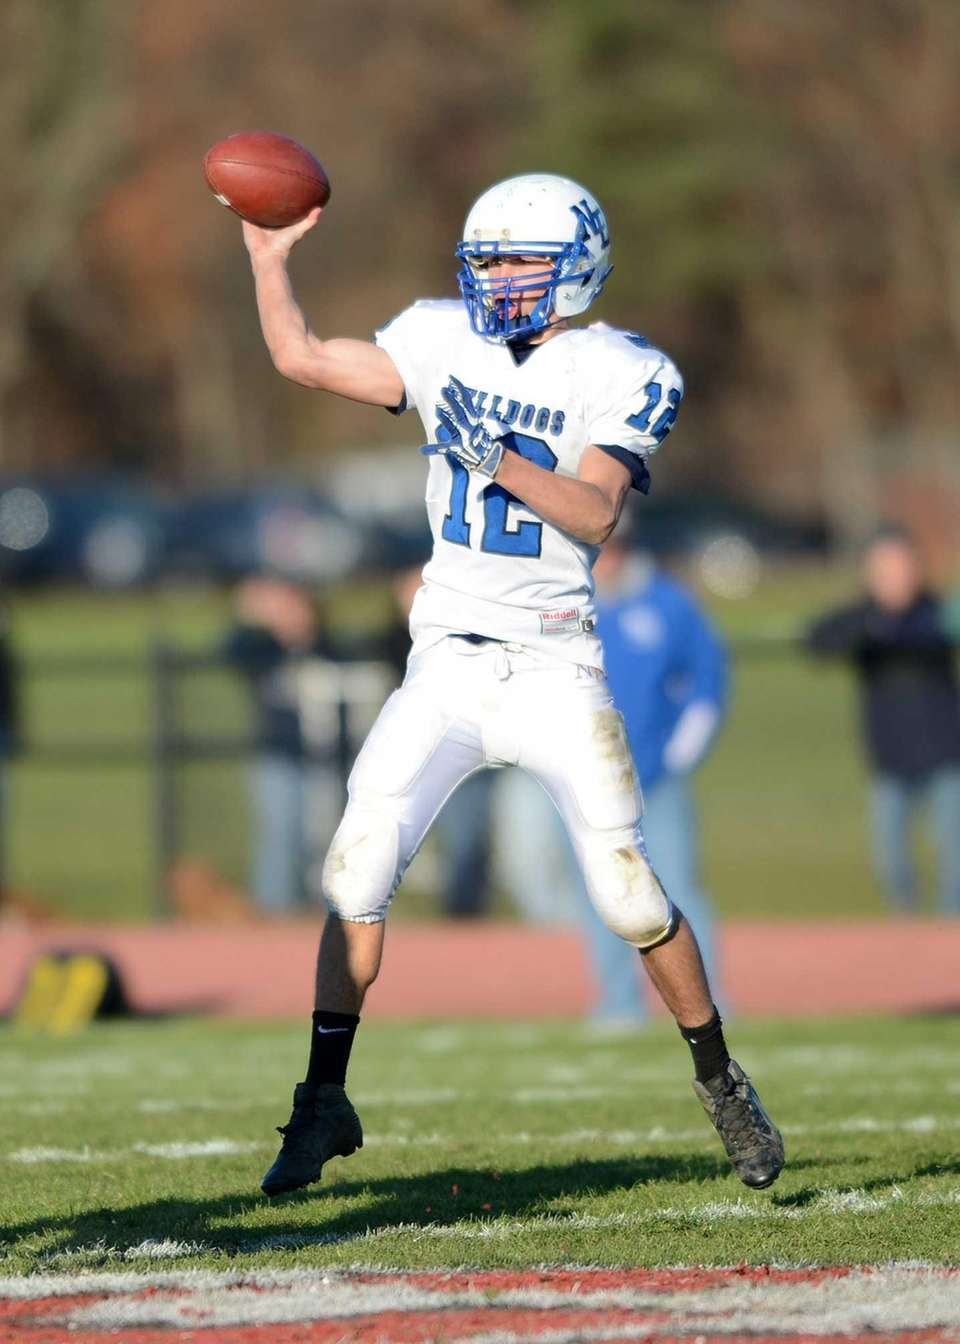 North Babylon's Jake Conner looks to pass downfield